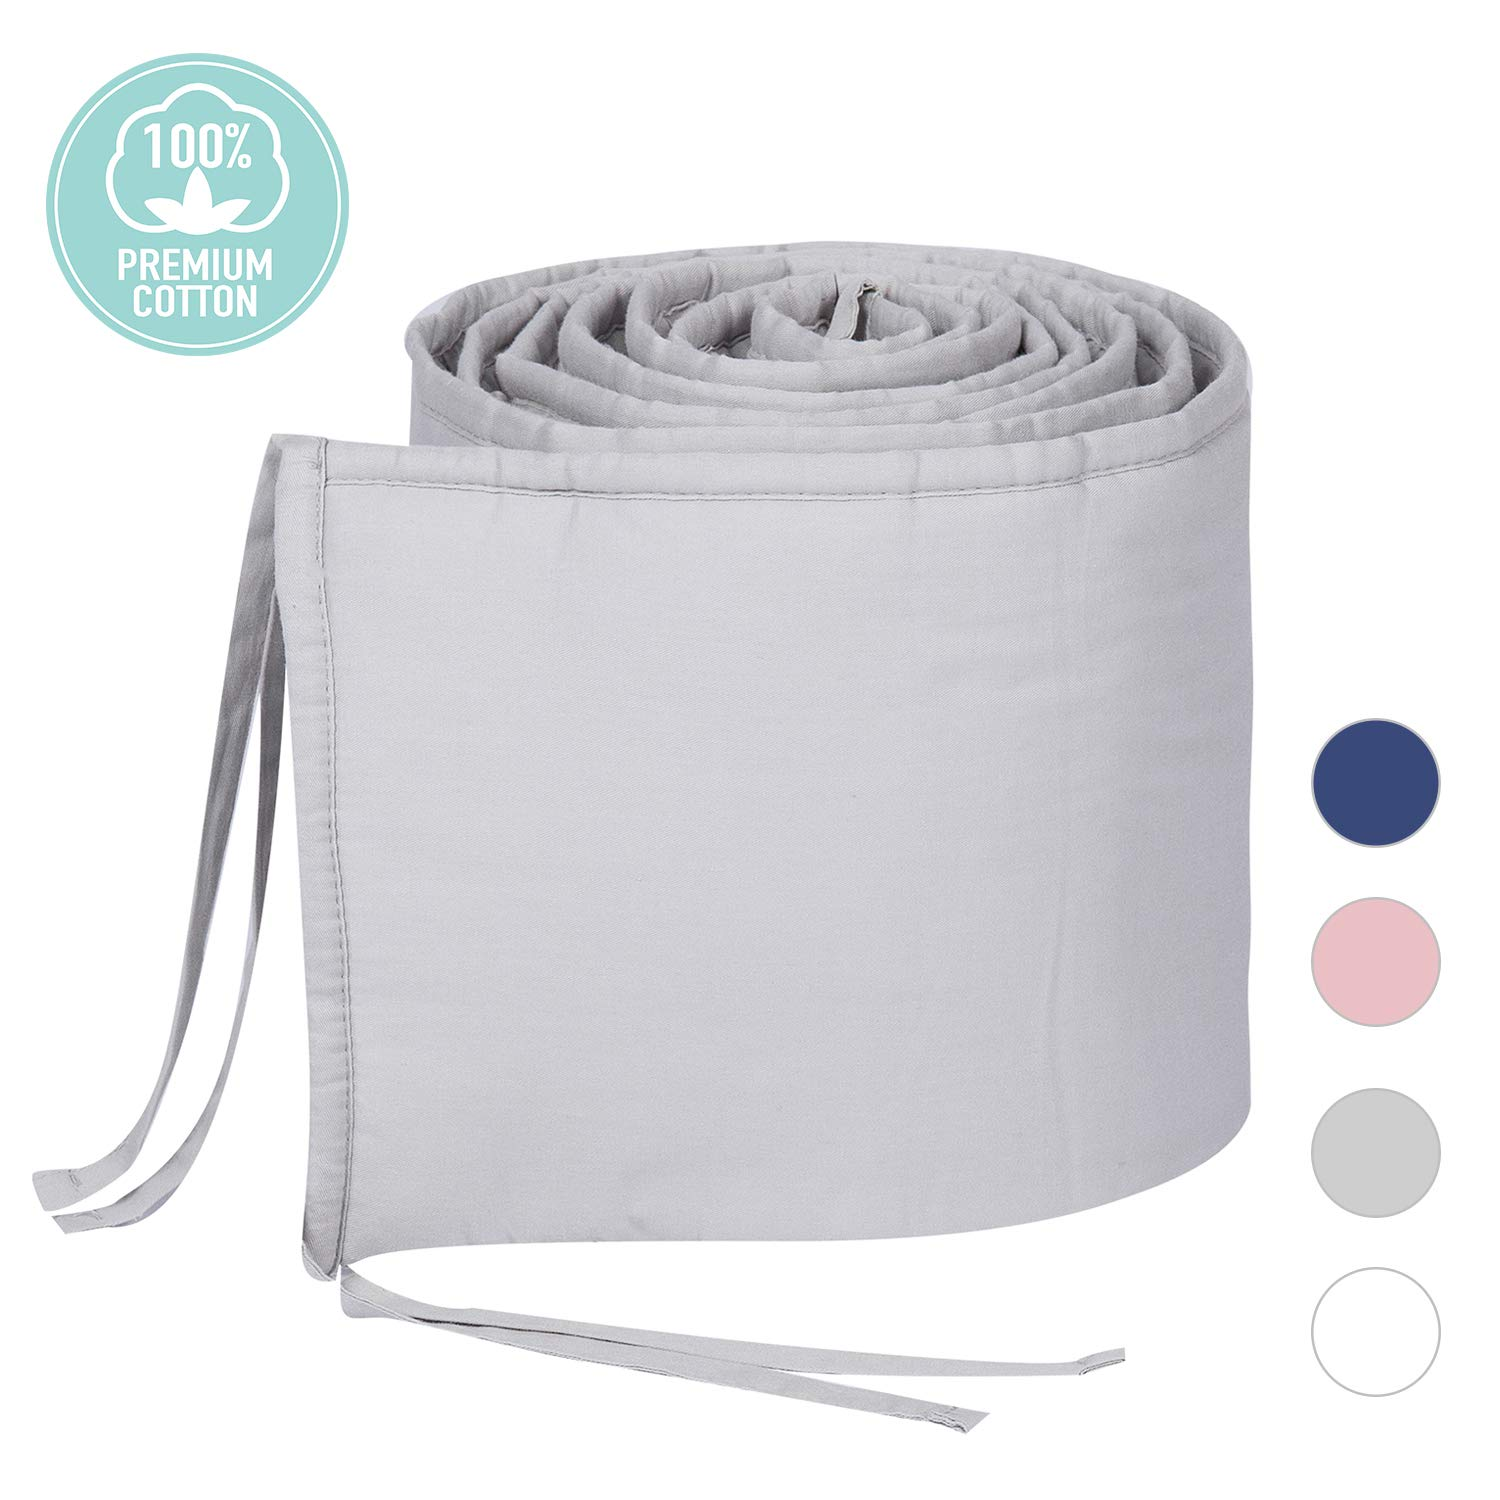 TILLYOU Cotton Collection No-Gap Nursery Mini Crib Bumper Pads for Babies 24x38, Ultra Soft & Machine Washable Padded Crib Liner for Portable Cribs, 1-Piece Safe Crib Padding Protector, Pale Gray by TILLYOU